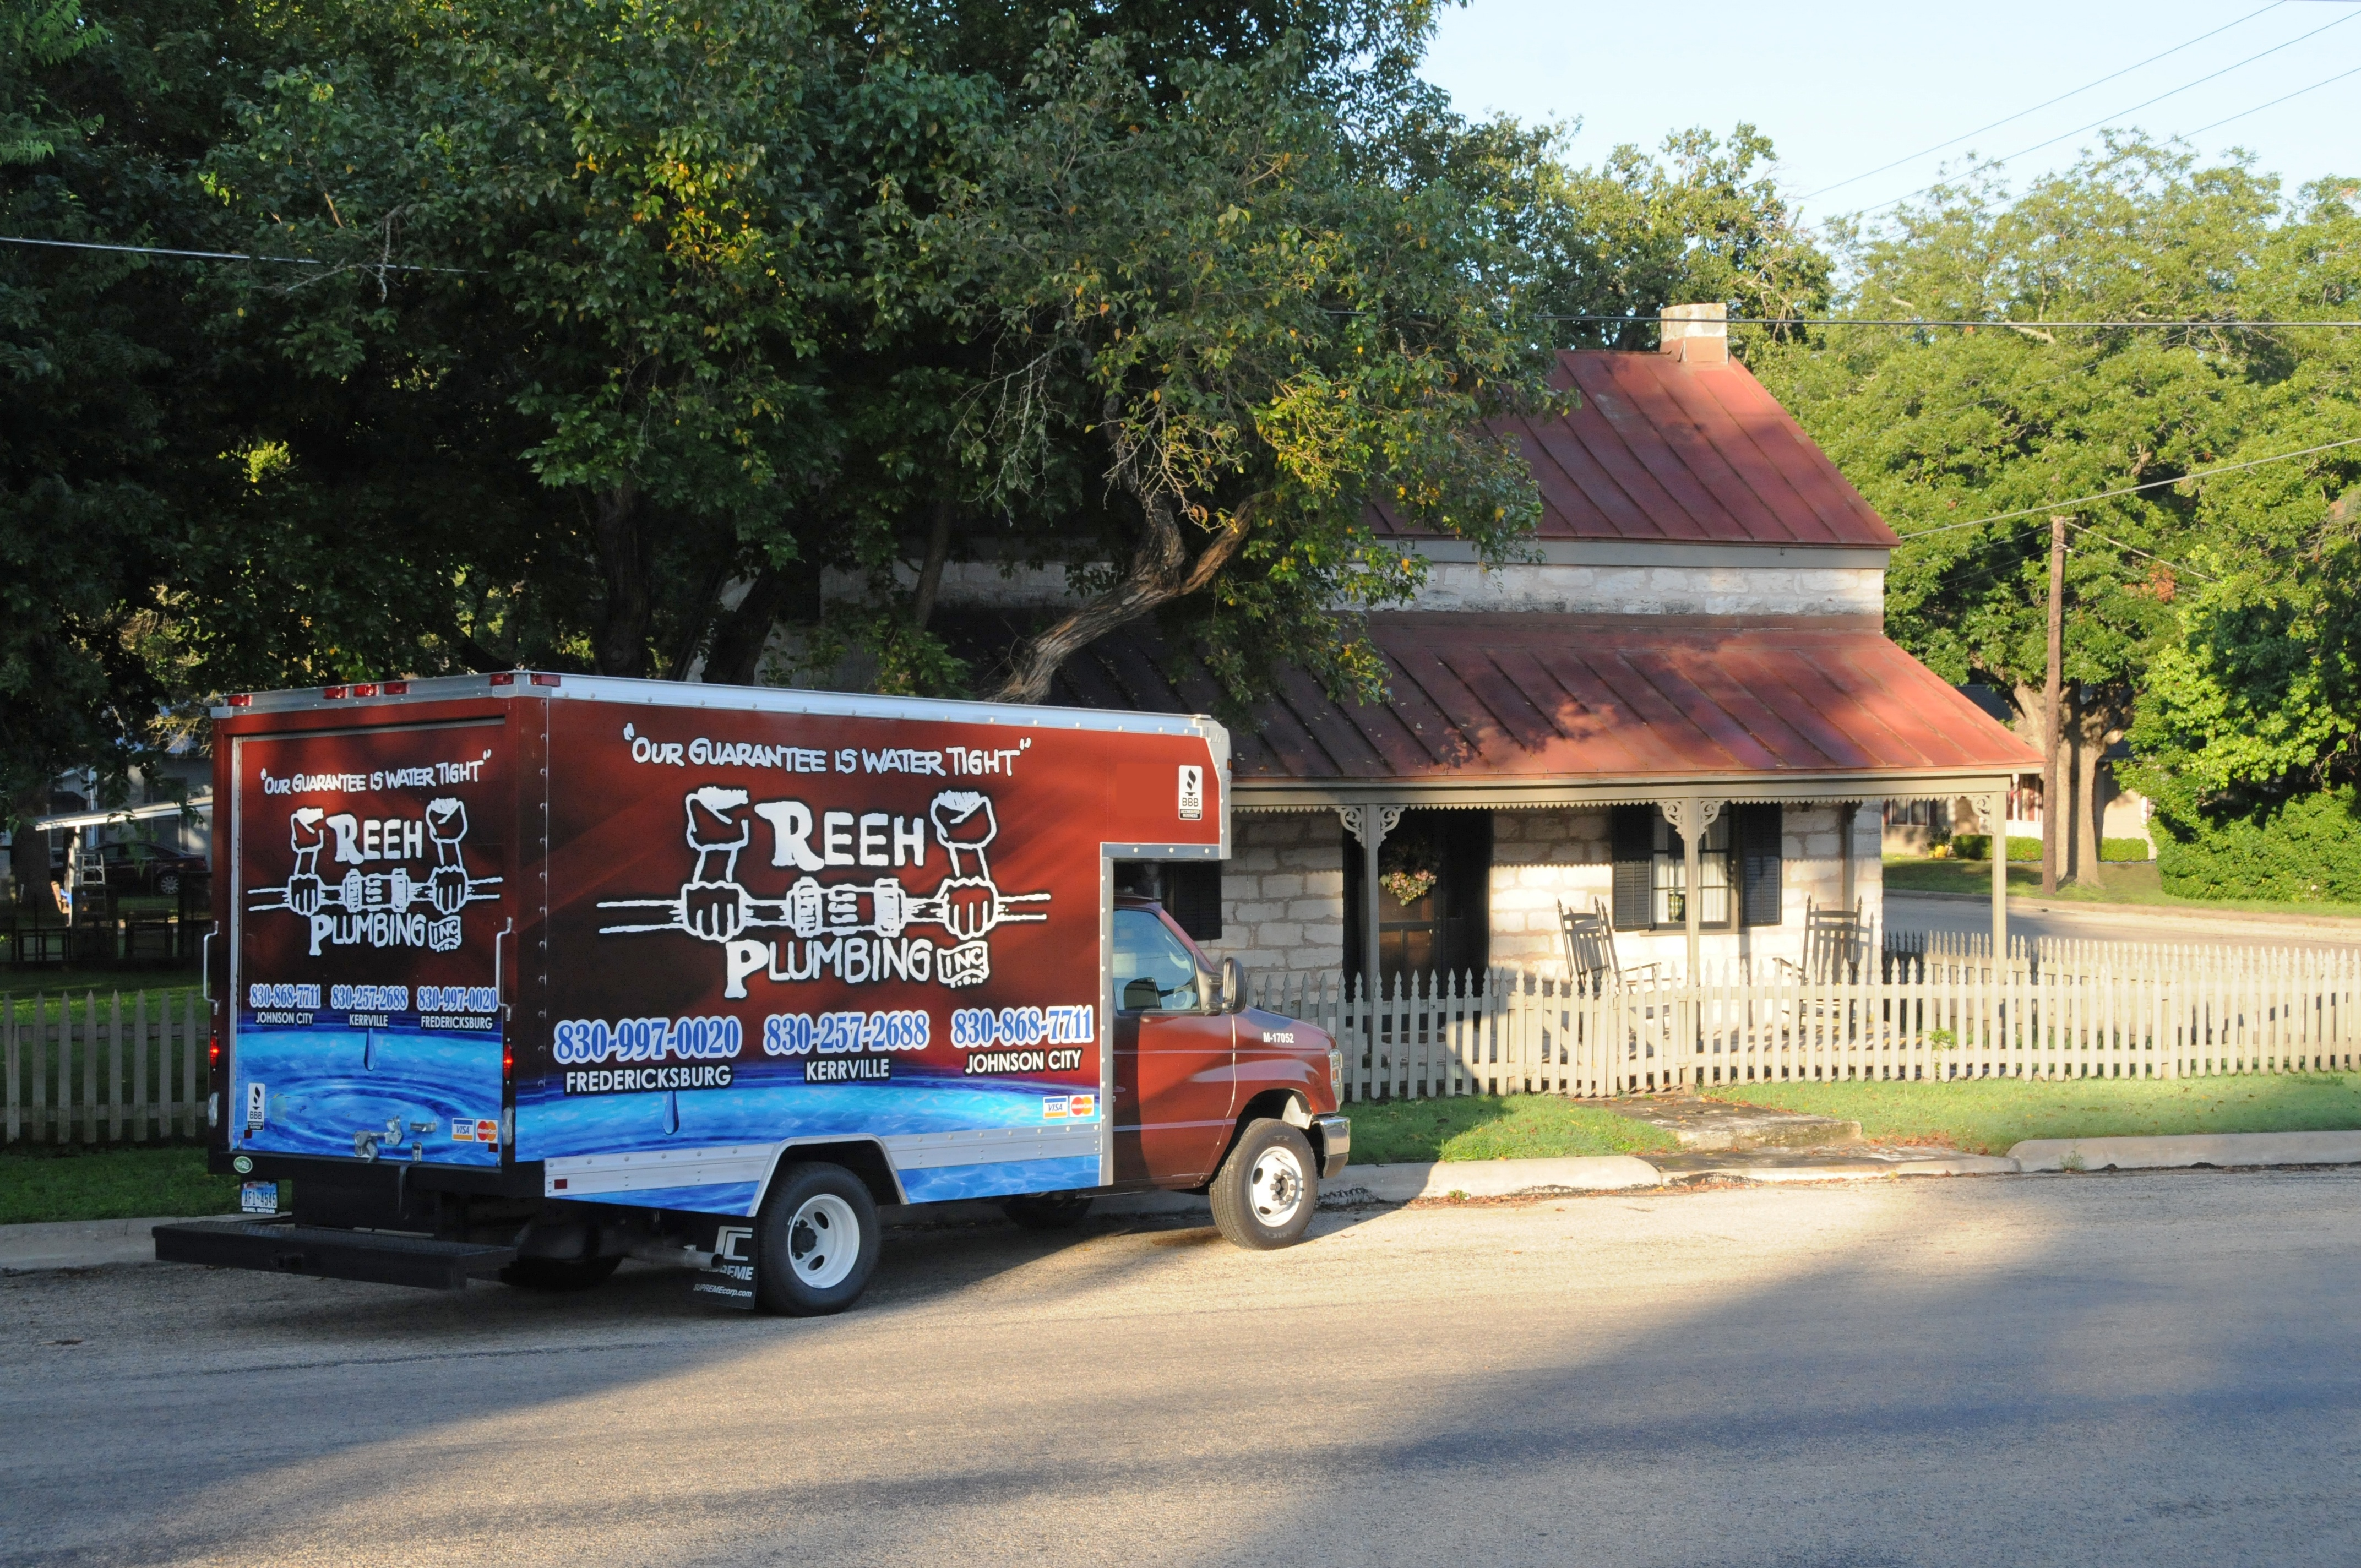 Reeh Plumbing, Renown Listing, 3494 Ranch Rd 1631 reviews | Plumbing at 3494 Ranch Rd 1631 - Fredericksburg TX